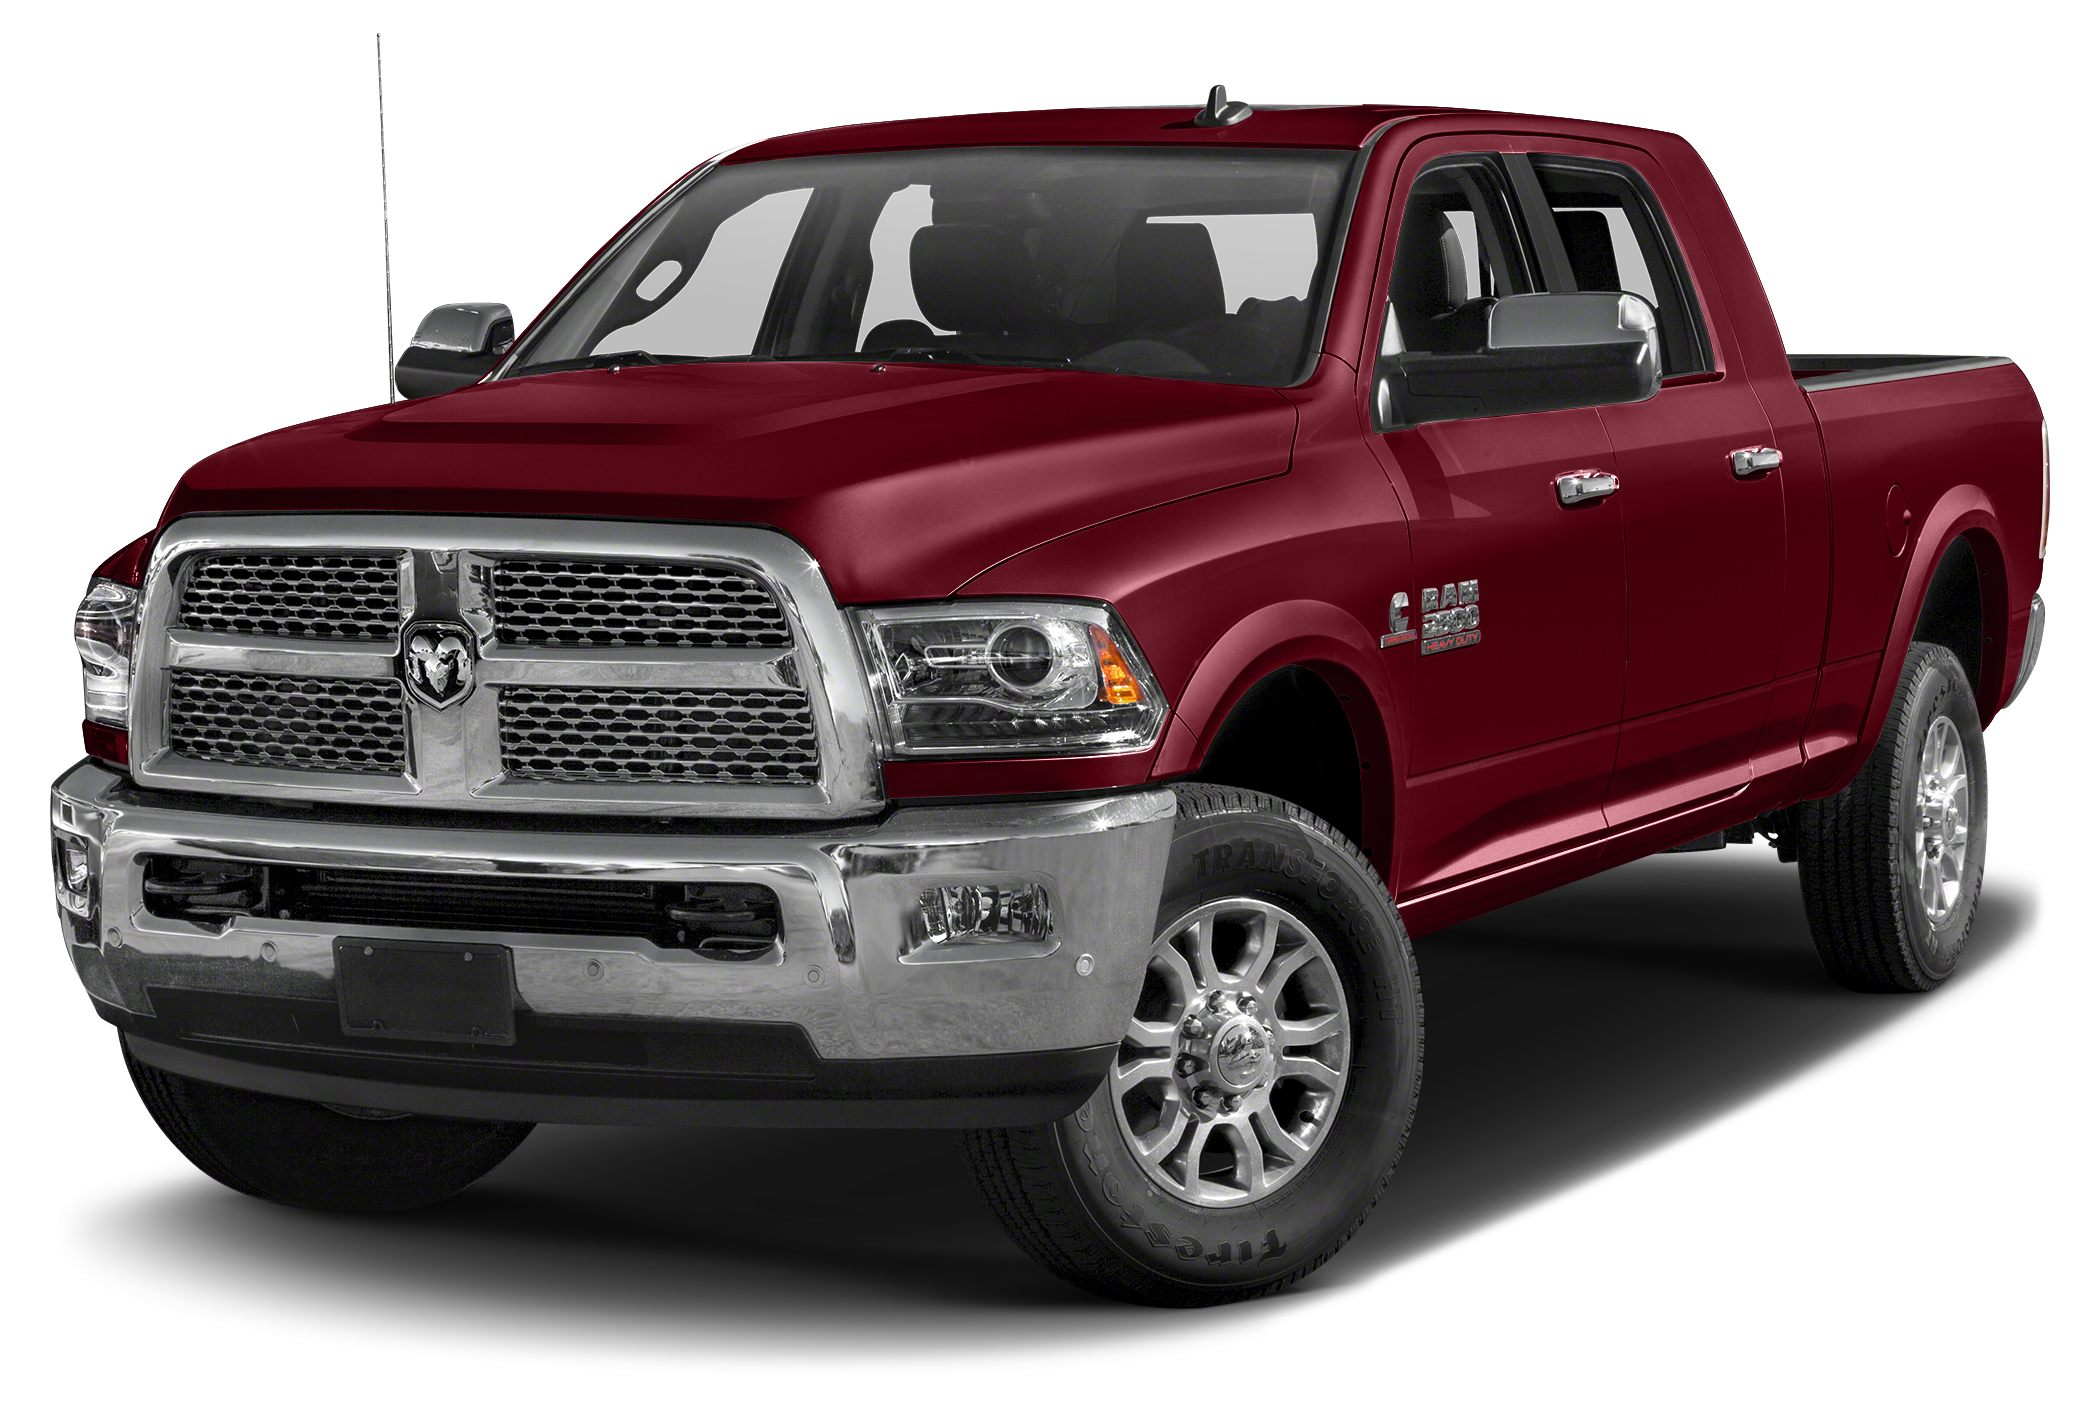 2014 RAM 2500 Laramie You can find this 2014 Ram 2500 4WD Mega Cab 1605 Laramie and many others l